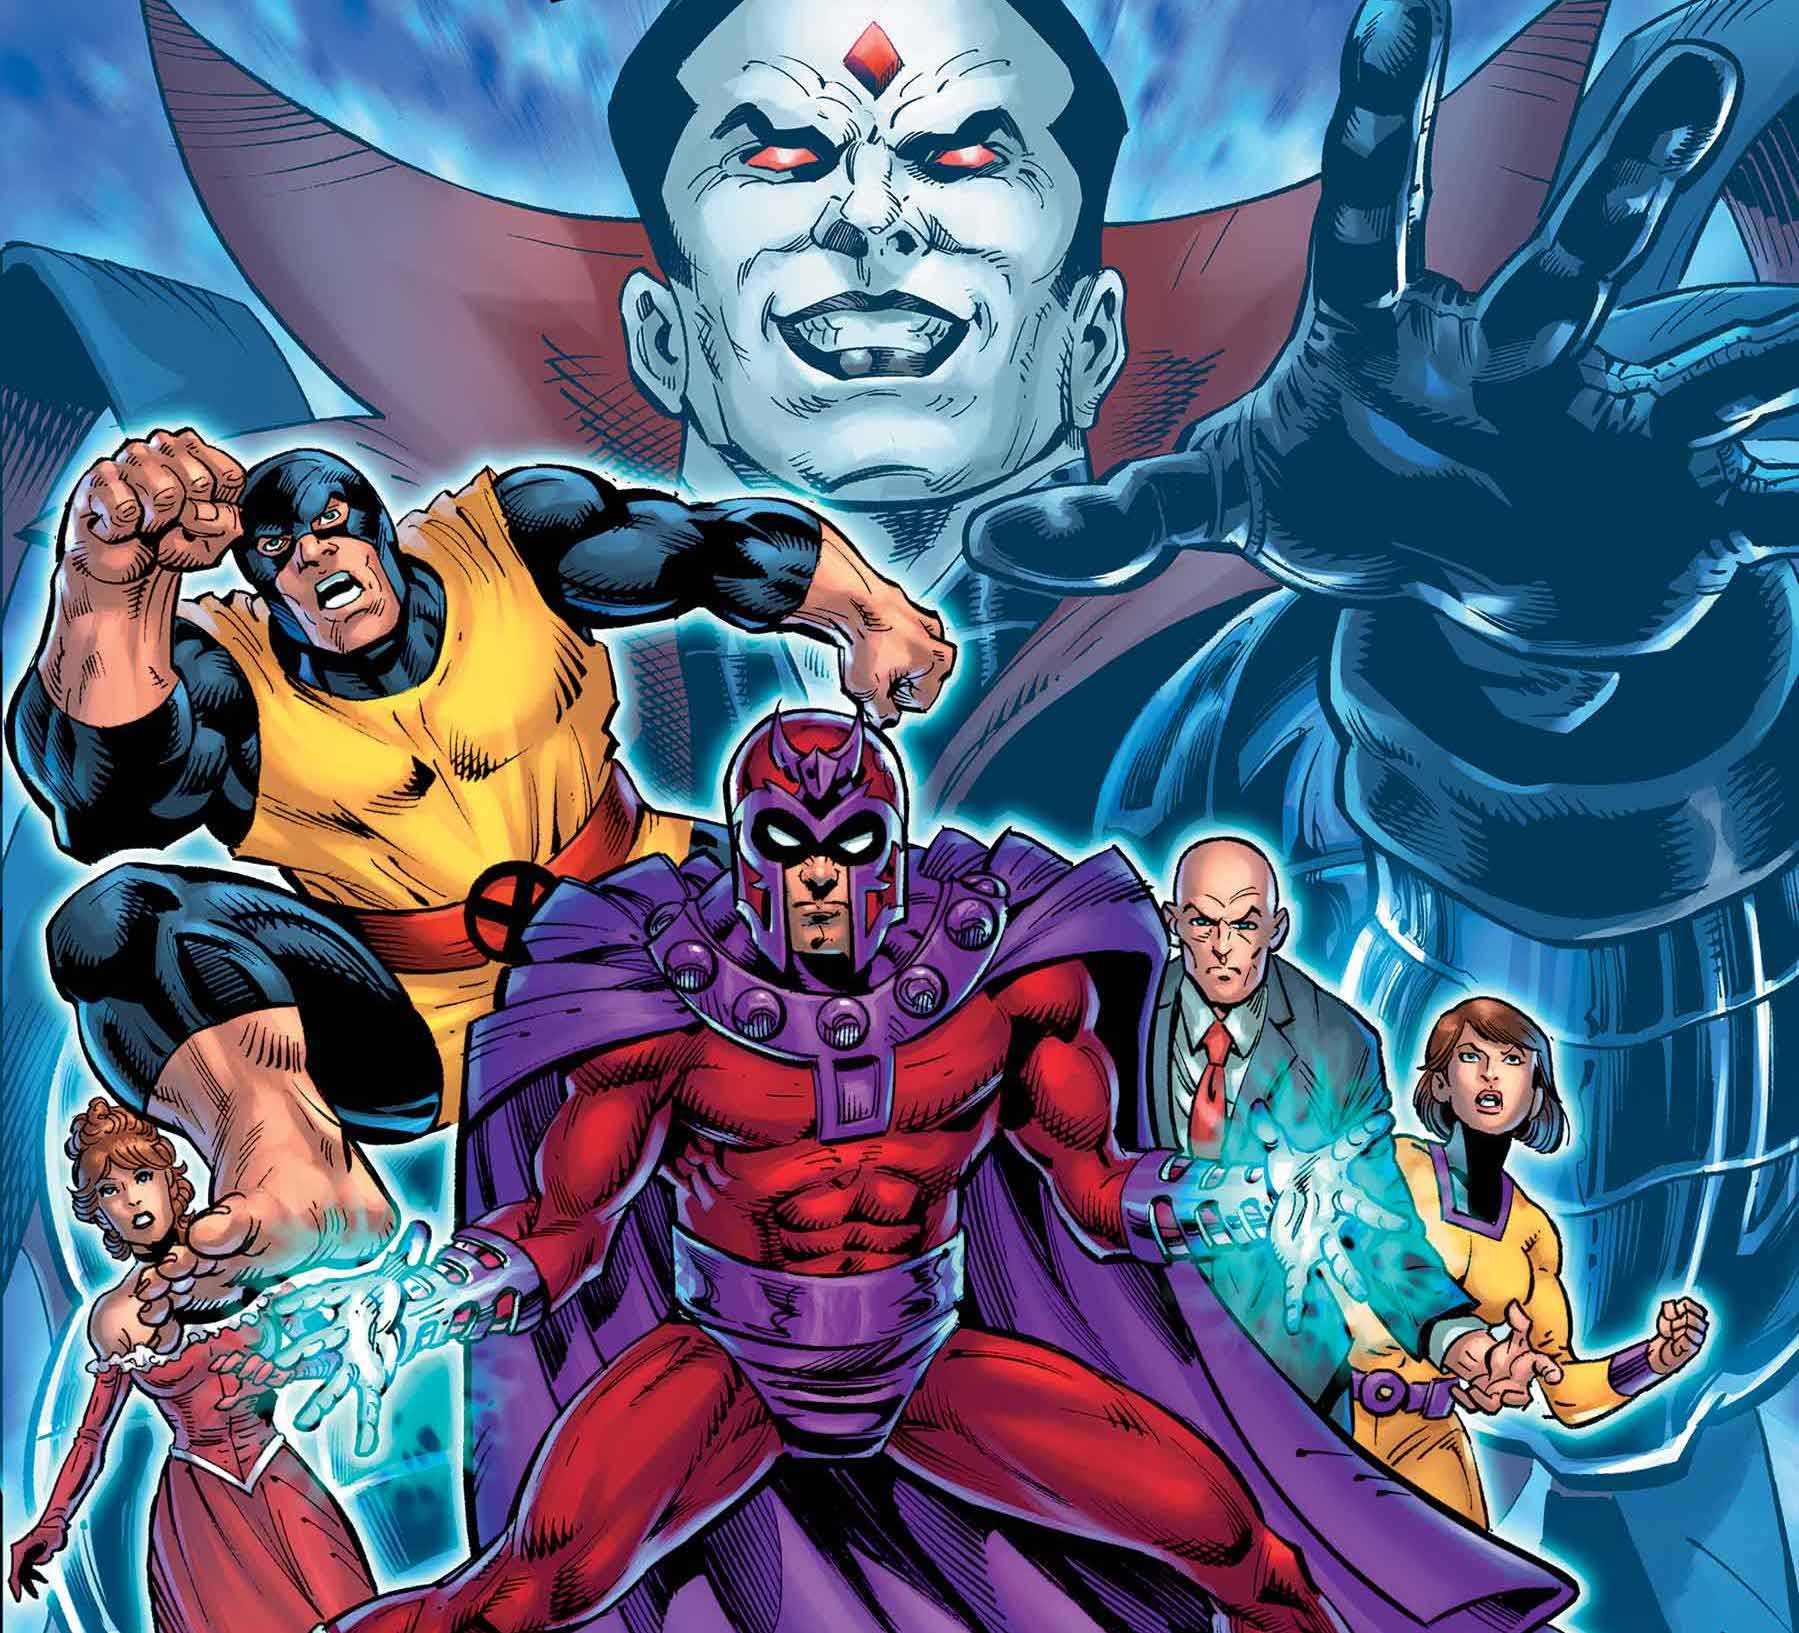 'X-Men Legends' #10 to introduce the Eighth Circle in Mr. Sinister story